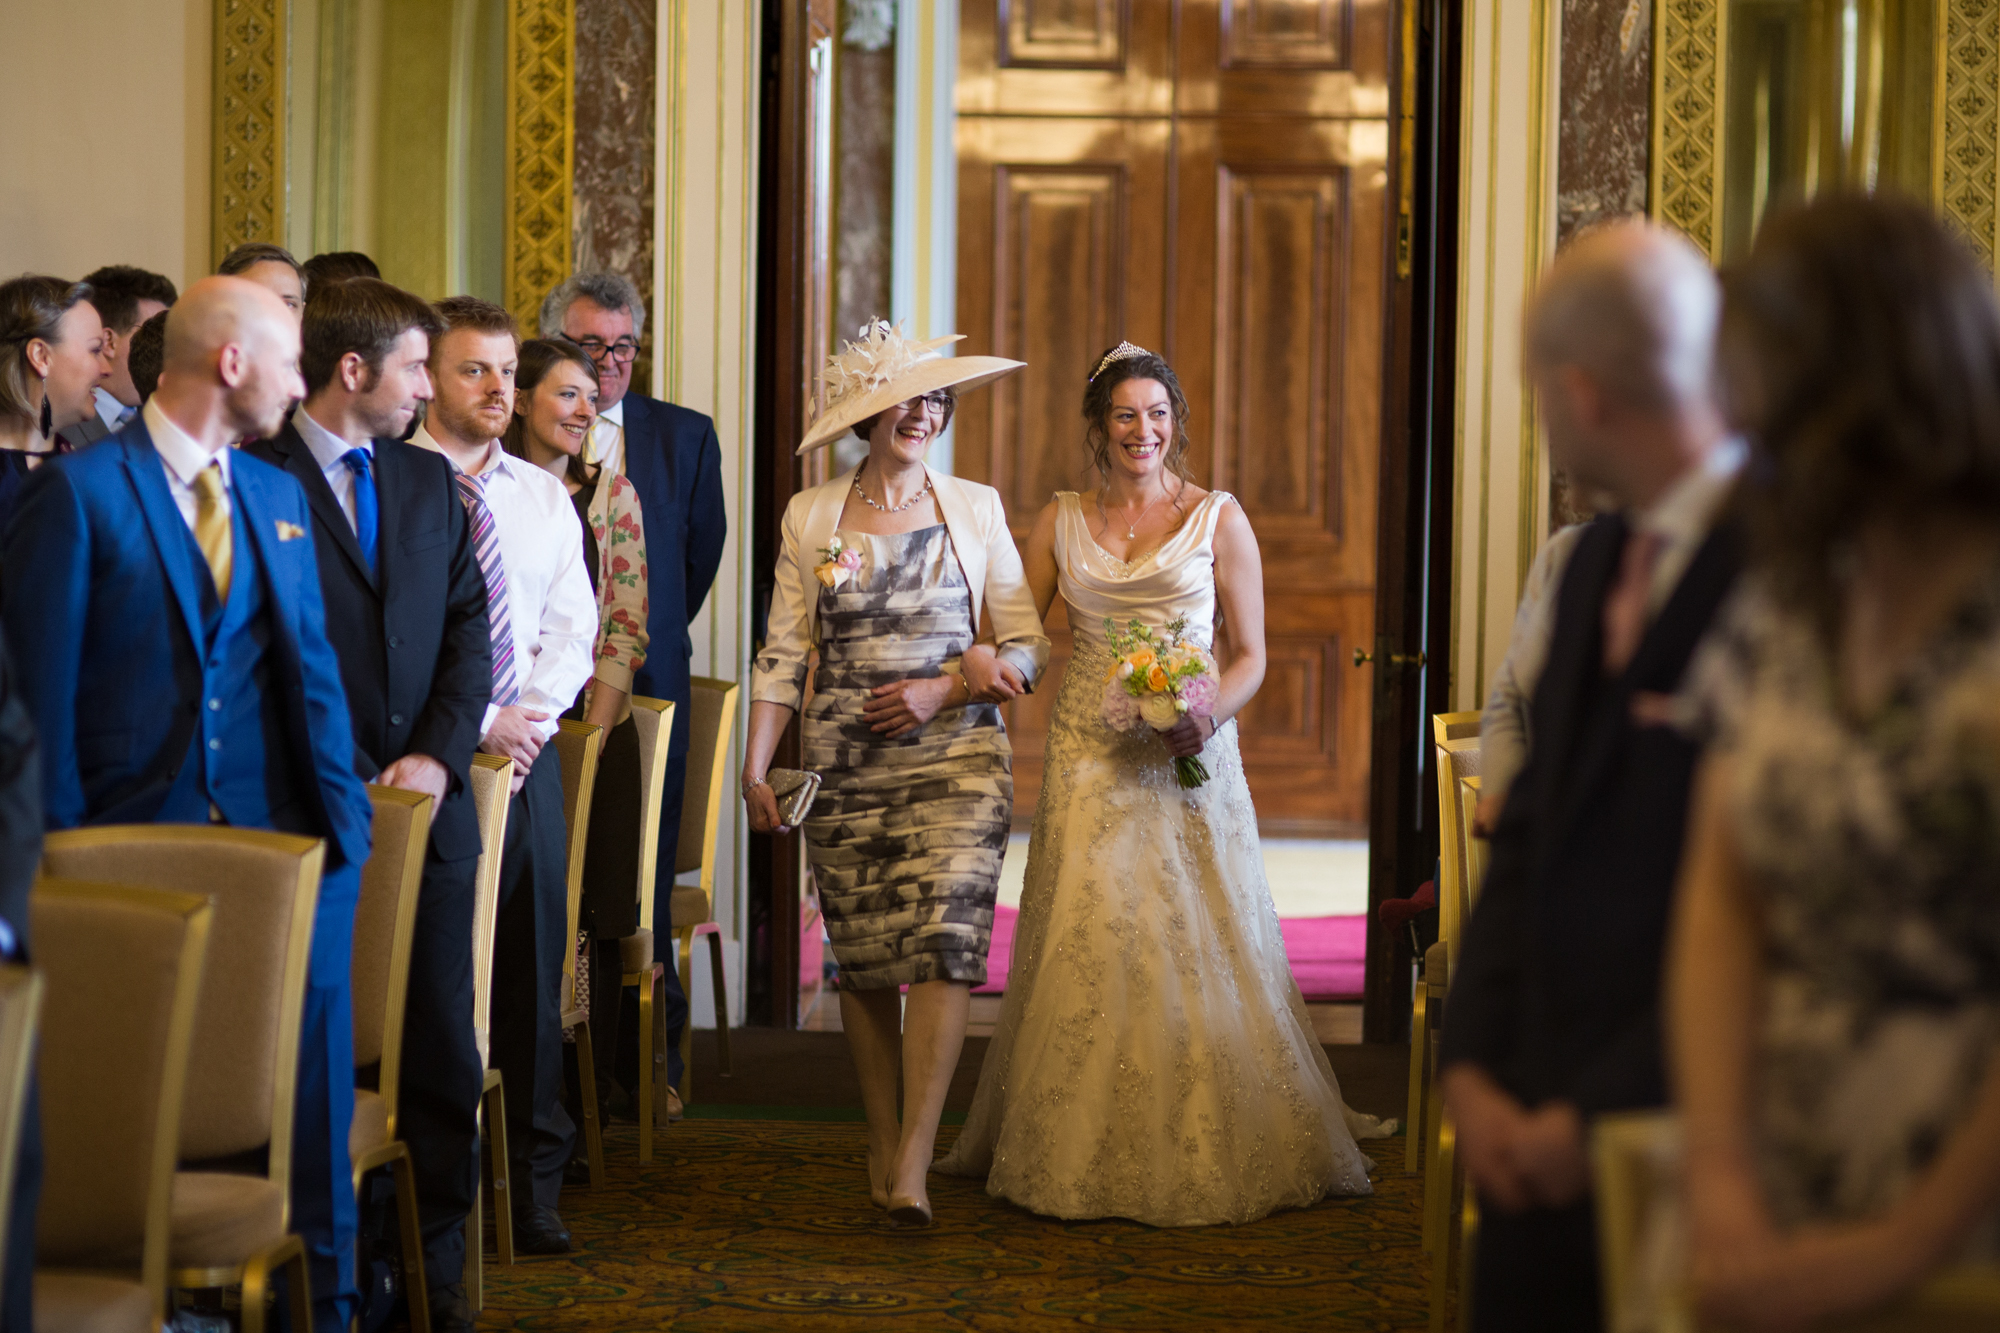 wynyard hall wedding photographer duncan mccall-1020.jpg